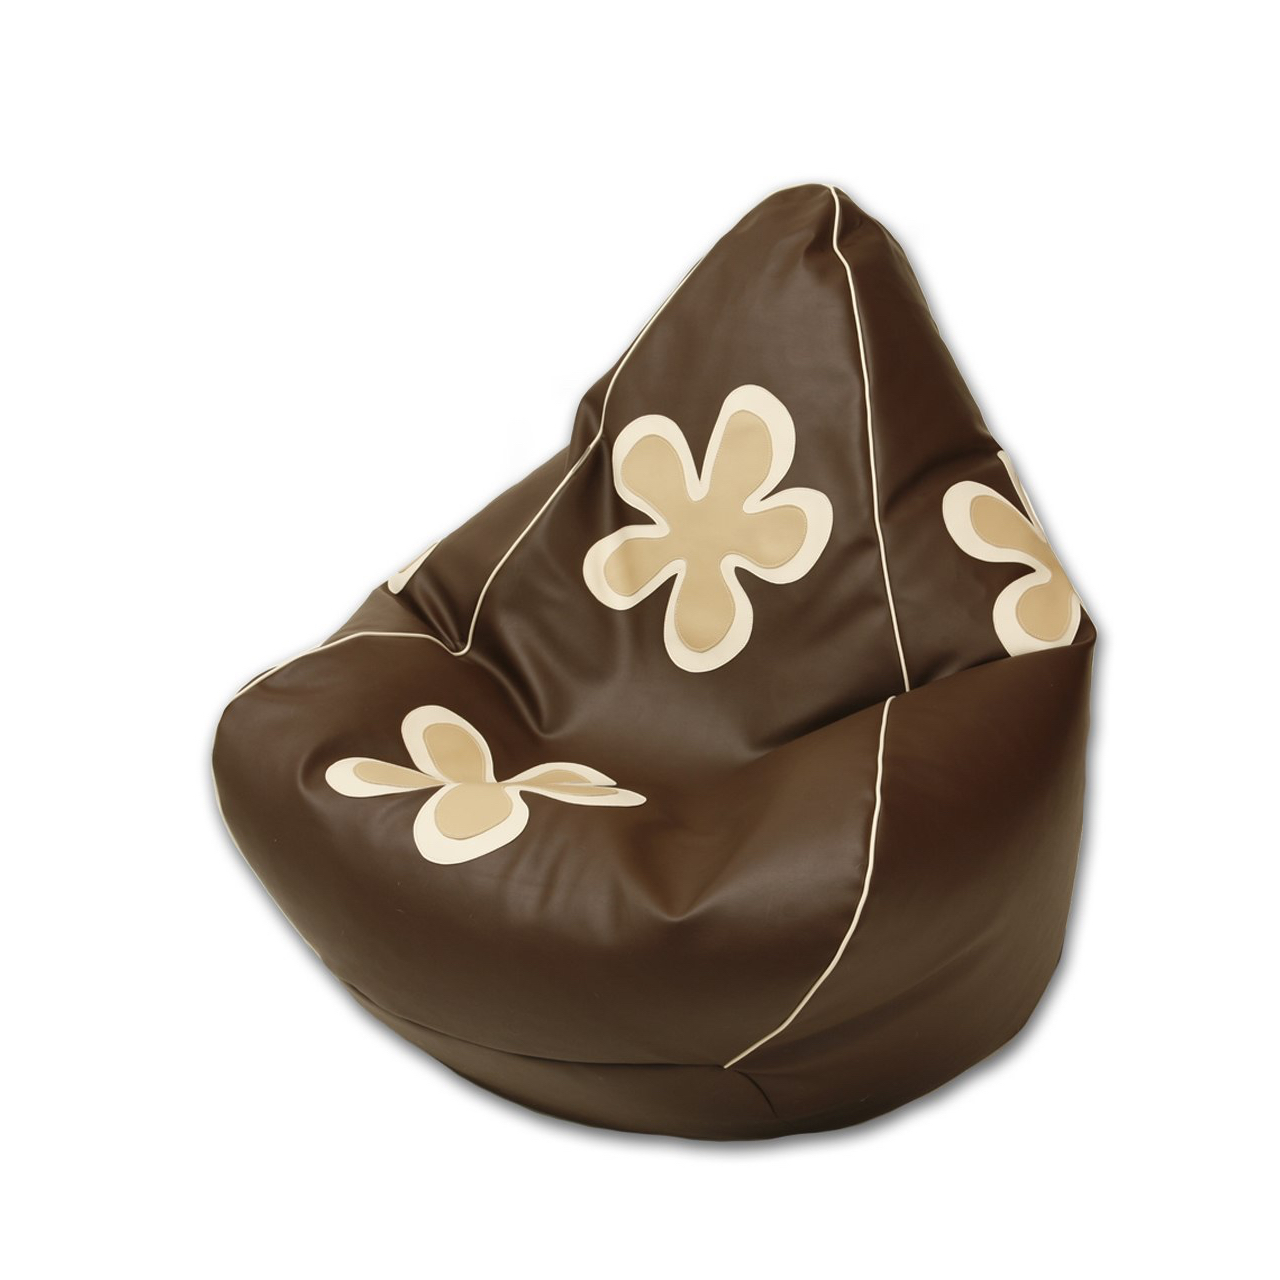 Frangipani Bean Bag in chocolate